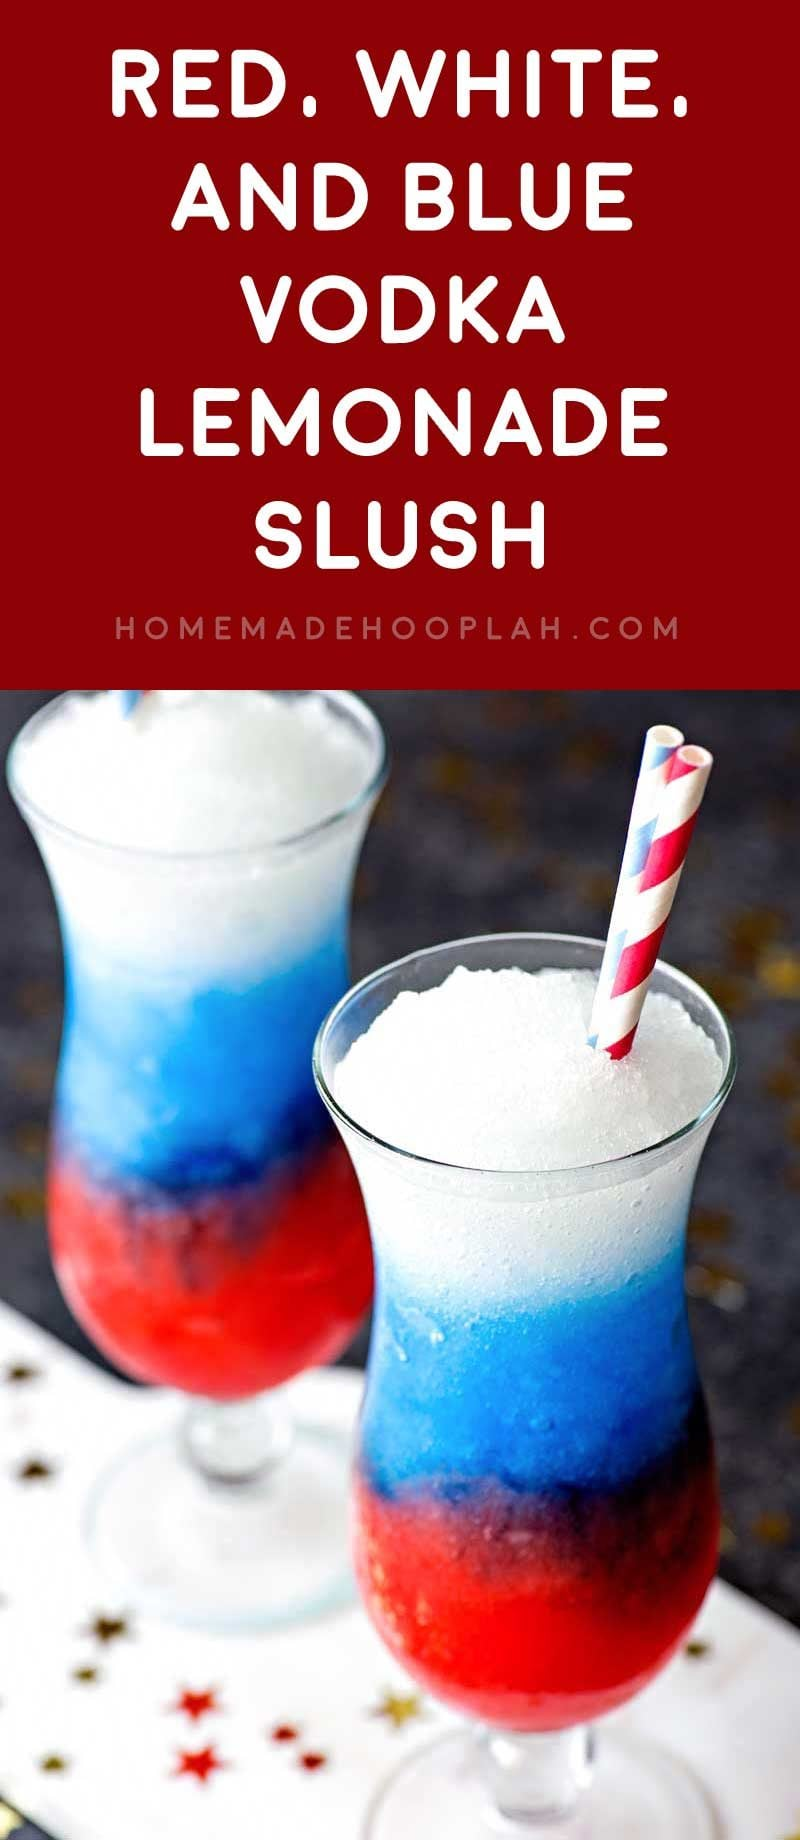 Red, White, and Blue Vodka Lemonade Slush! Celebrate your patriotism with a refreshing (and colorful!) slush made with grenadine, blue curacao, and spiked lemonade.   HomemadeHooplah.com